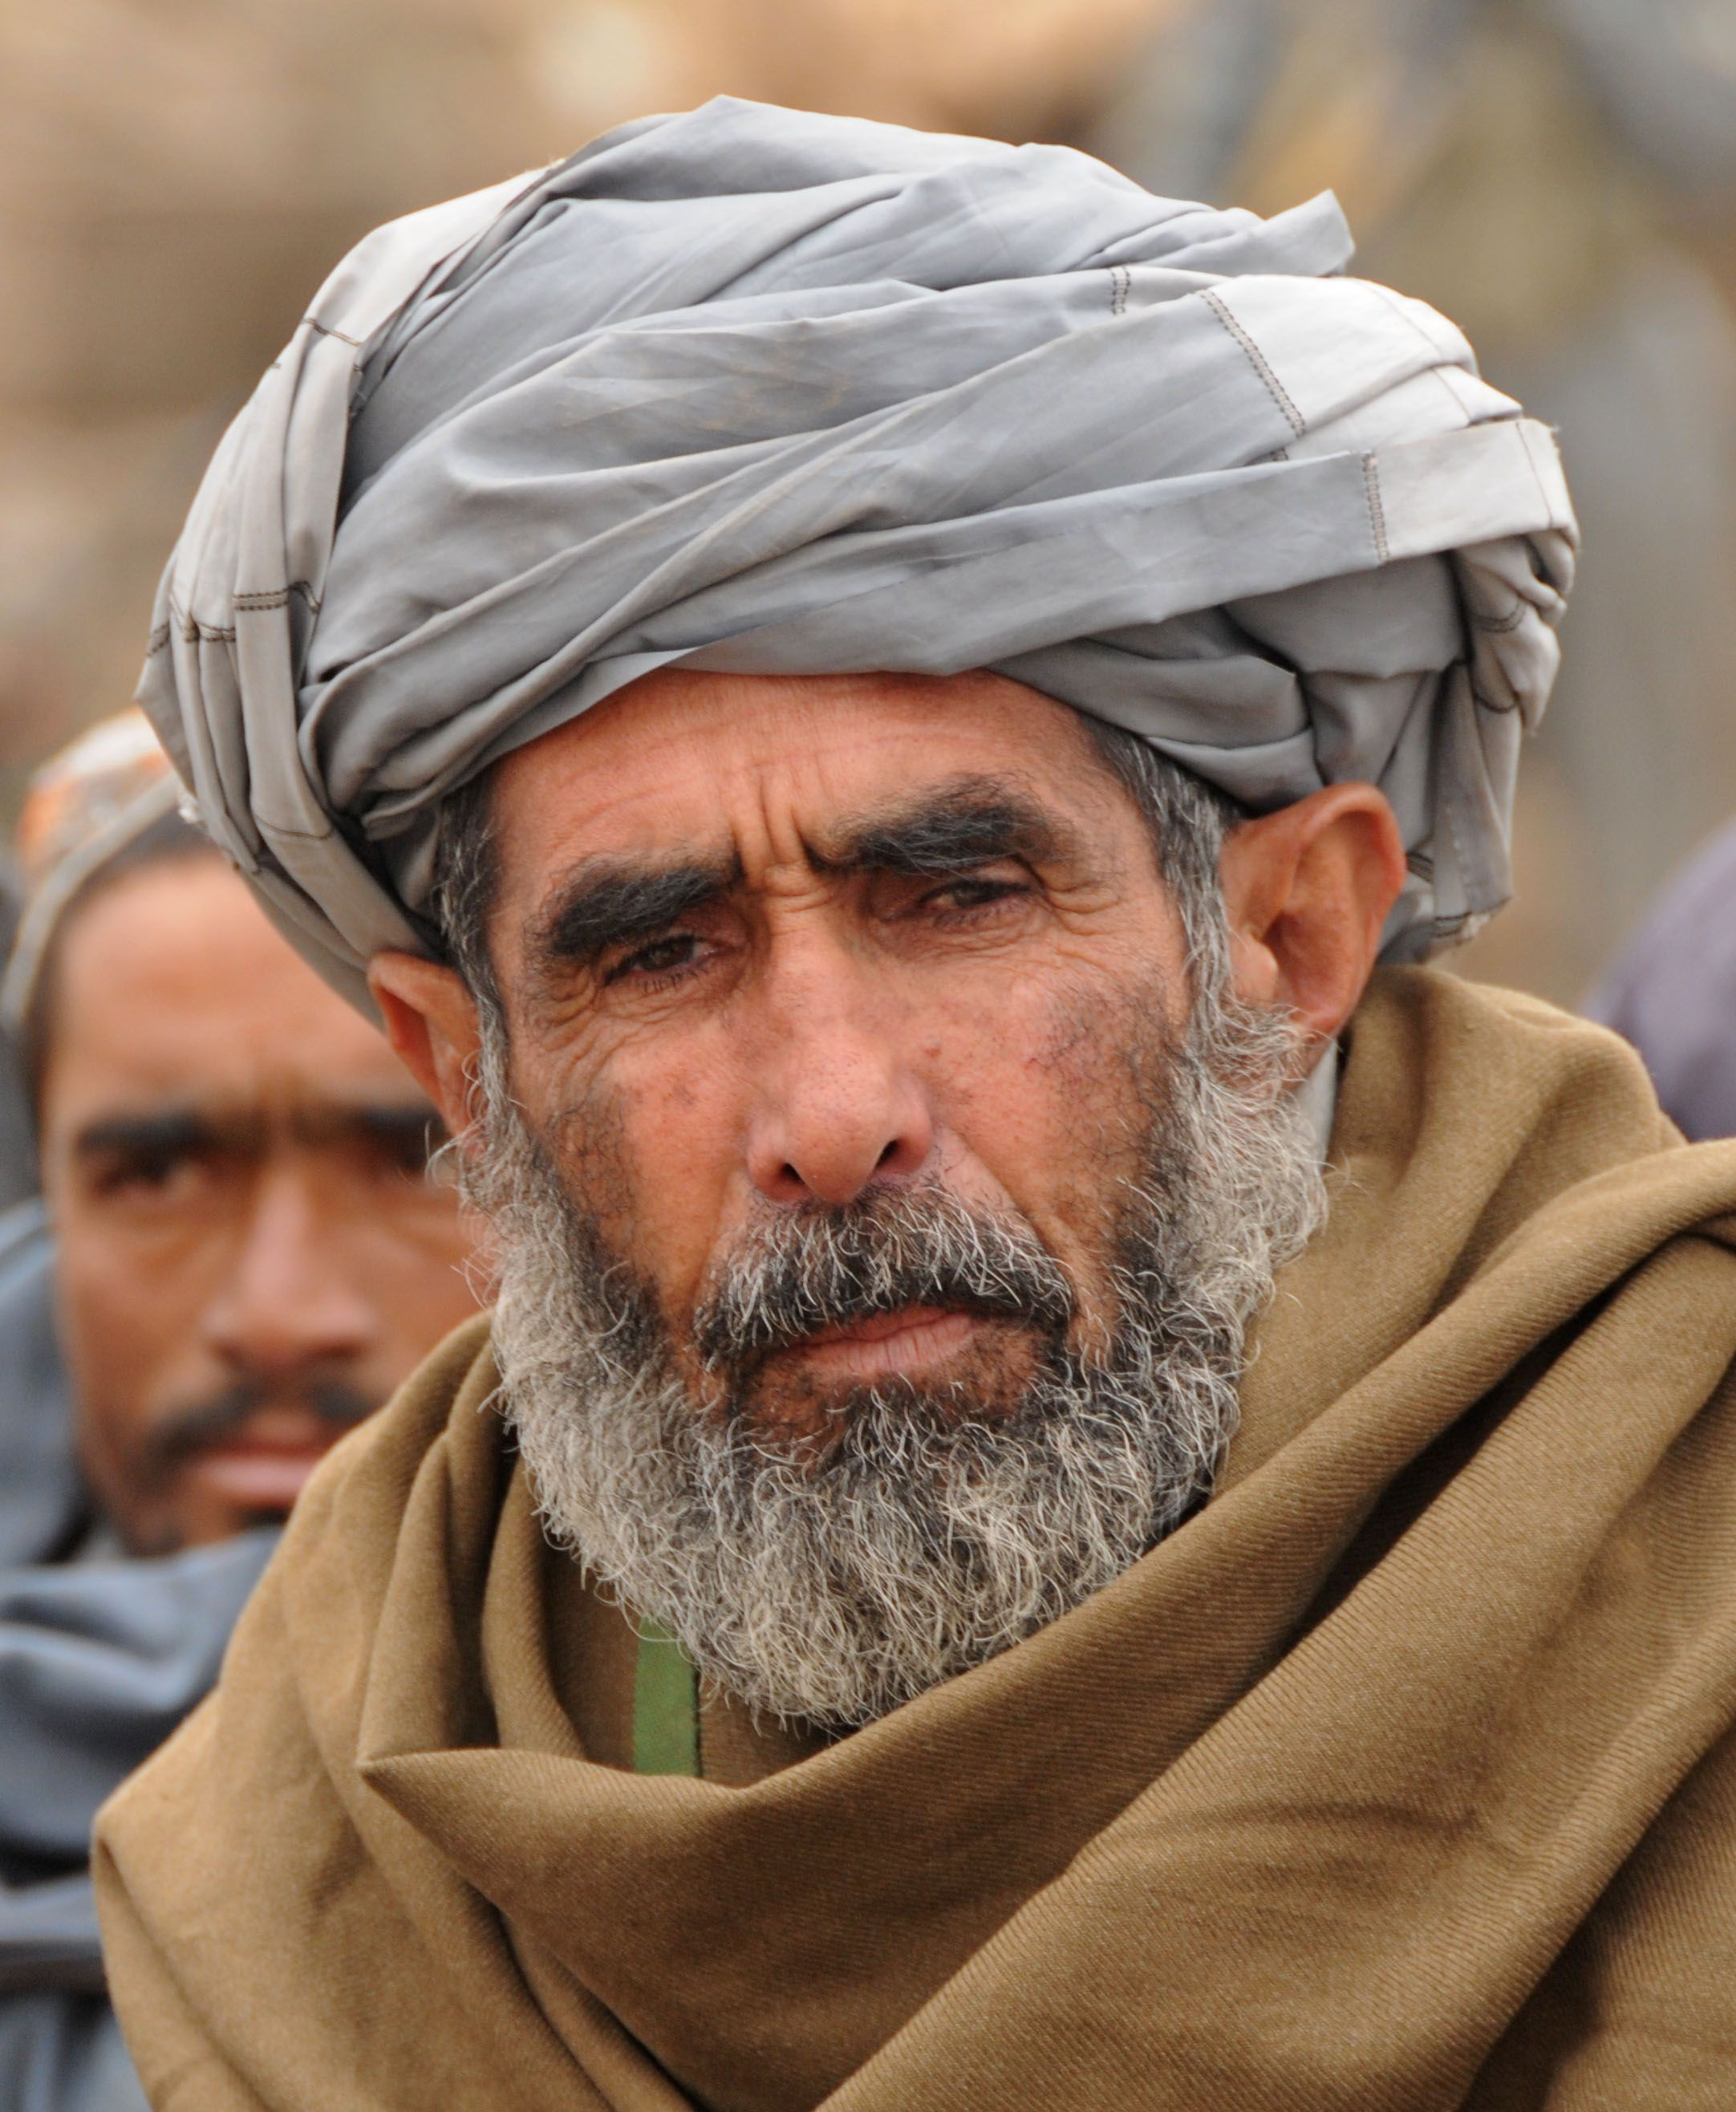 Afghan Man Middle East Clothing